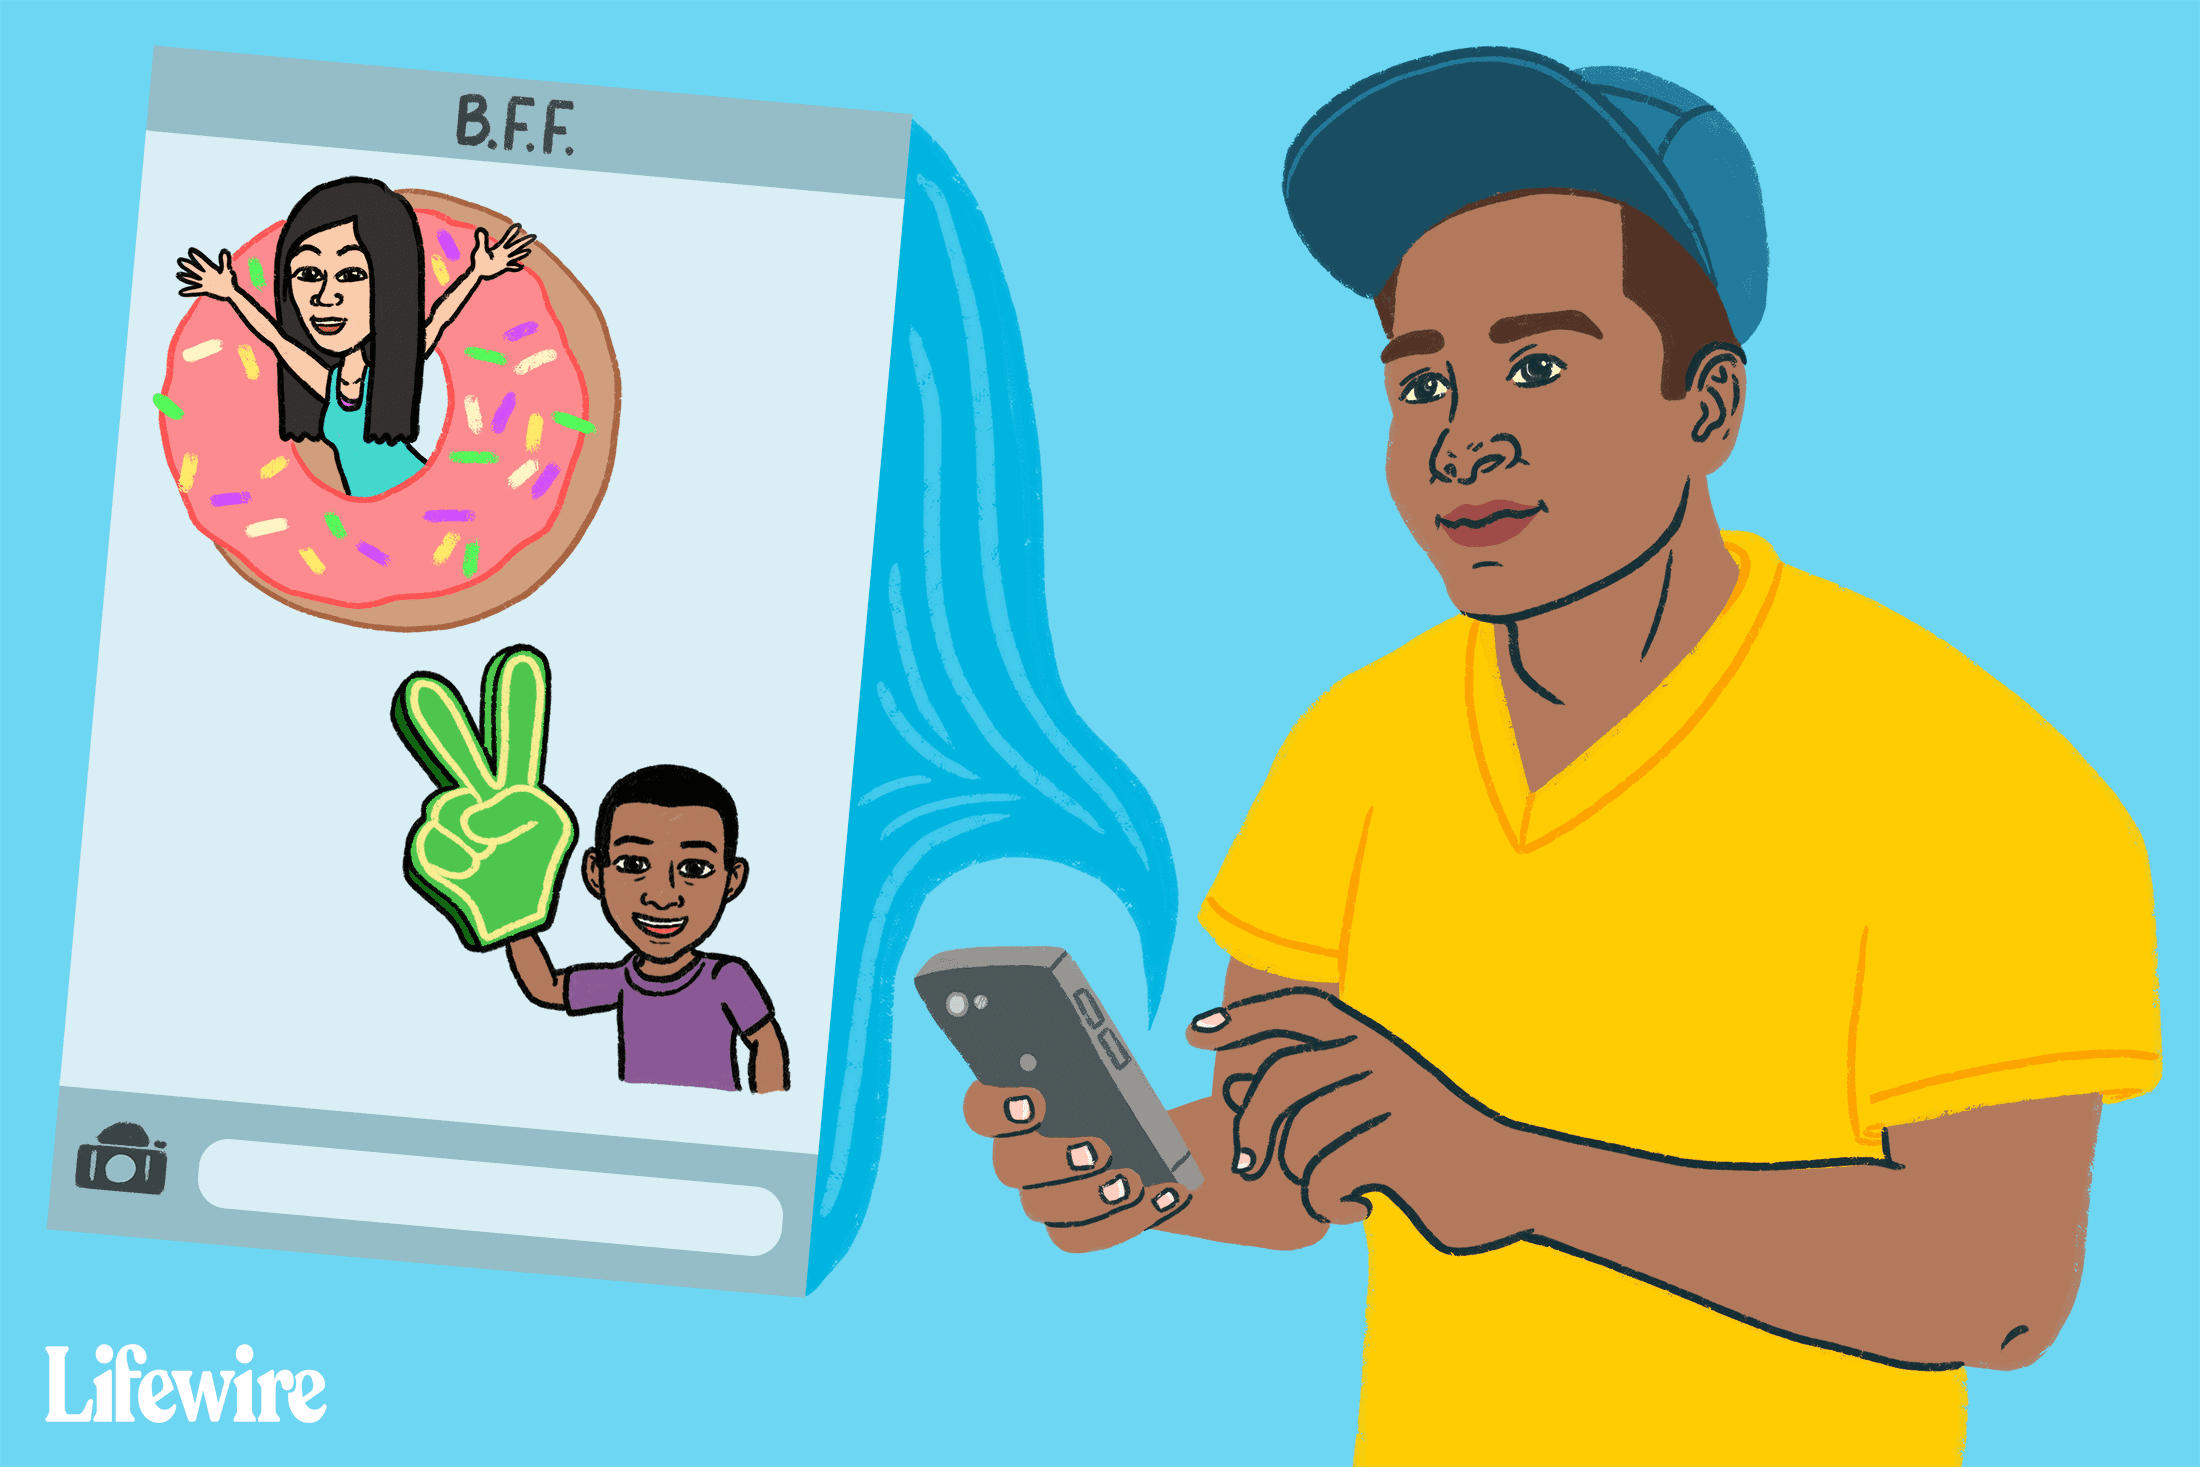 An illustration showing a person using a bitmoji